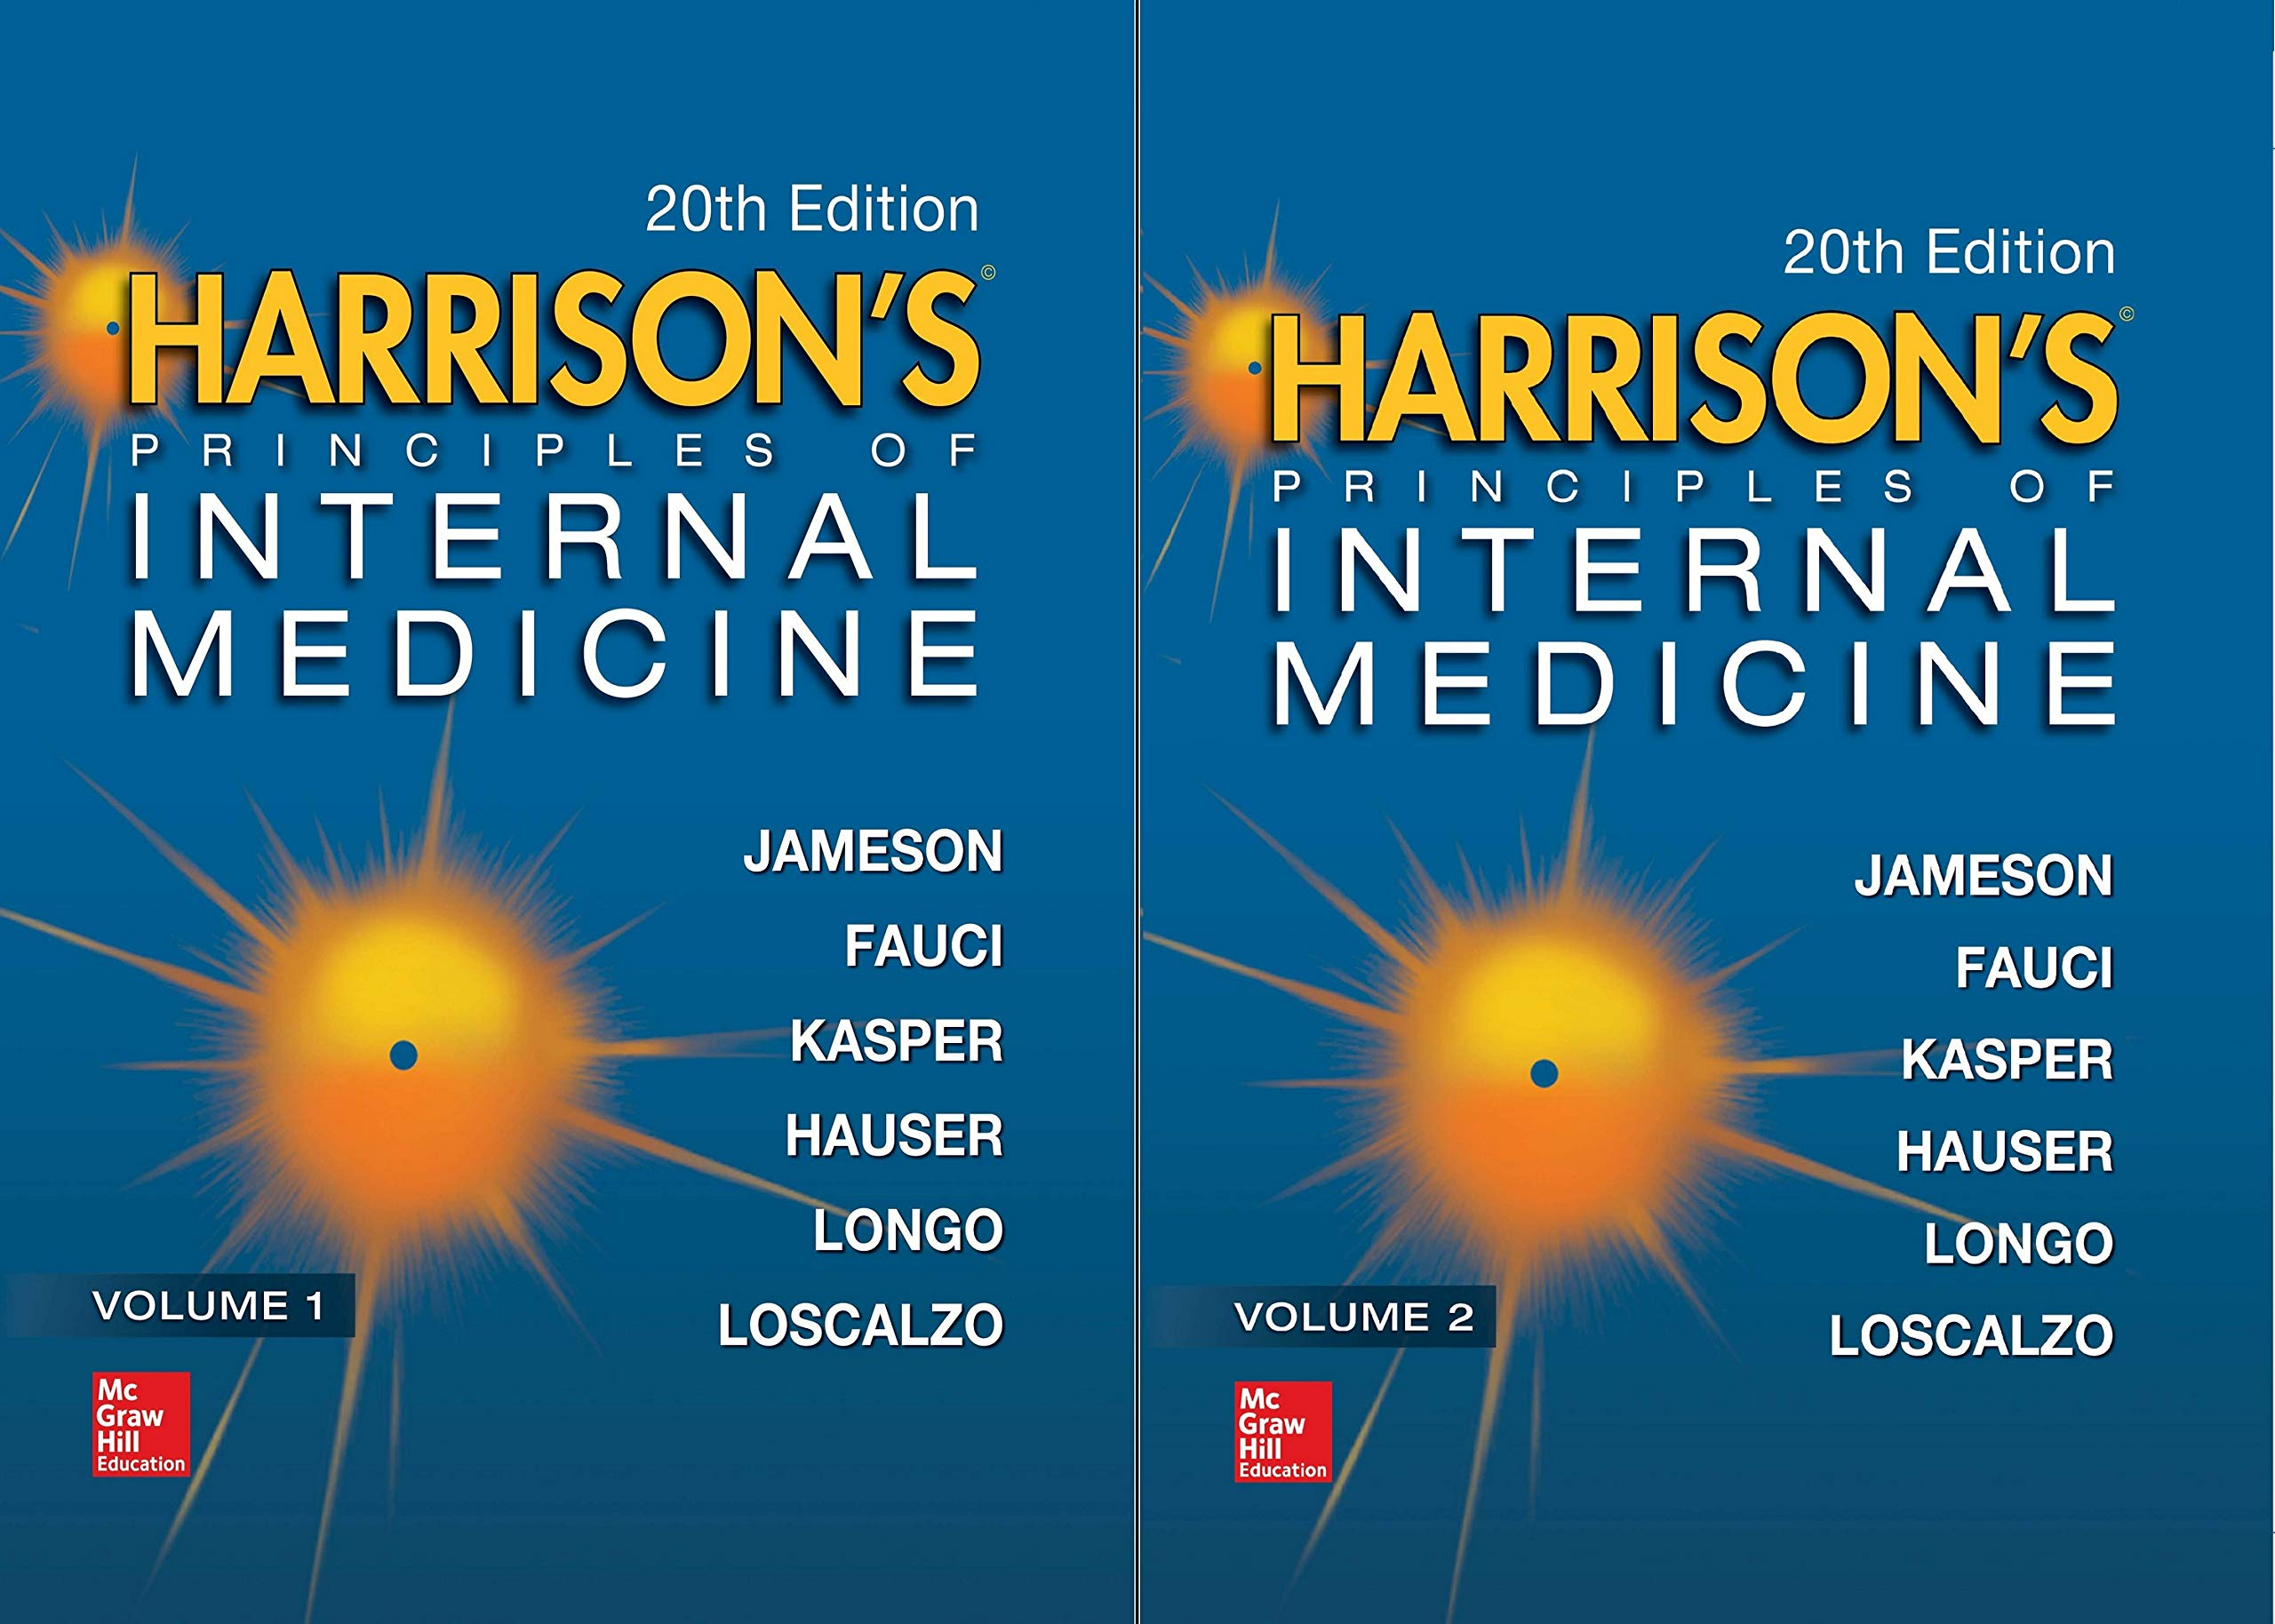 Edition davidson 20th book medicine of